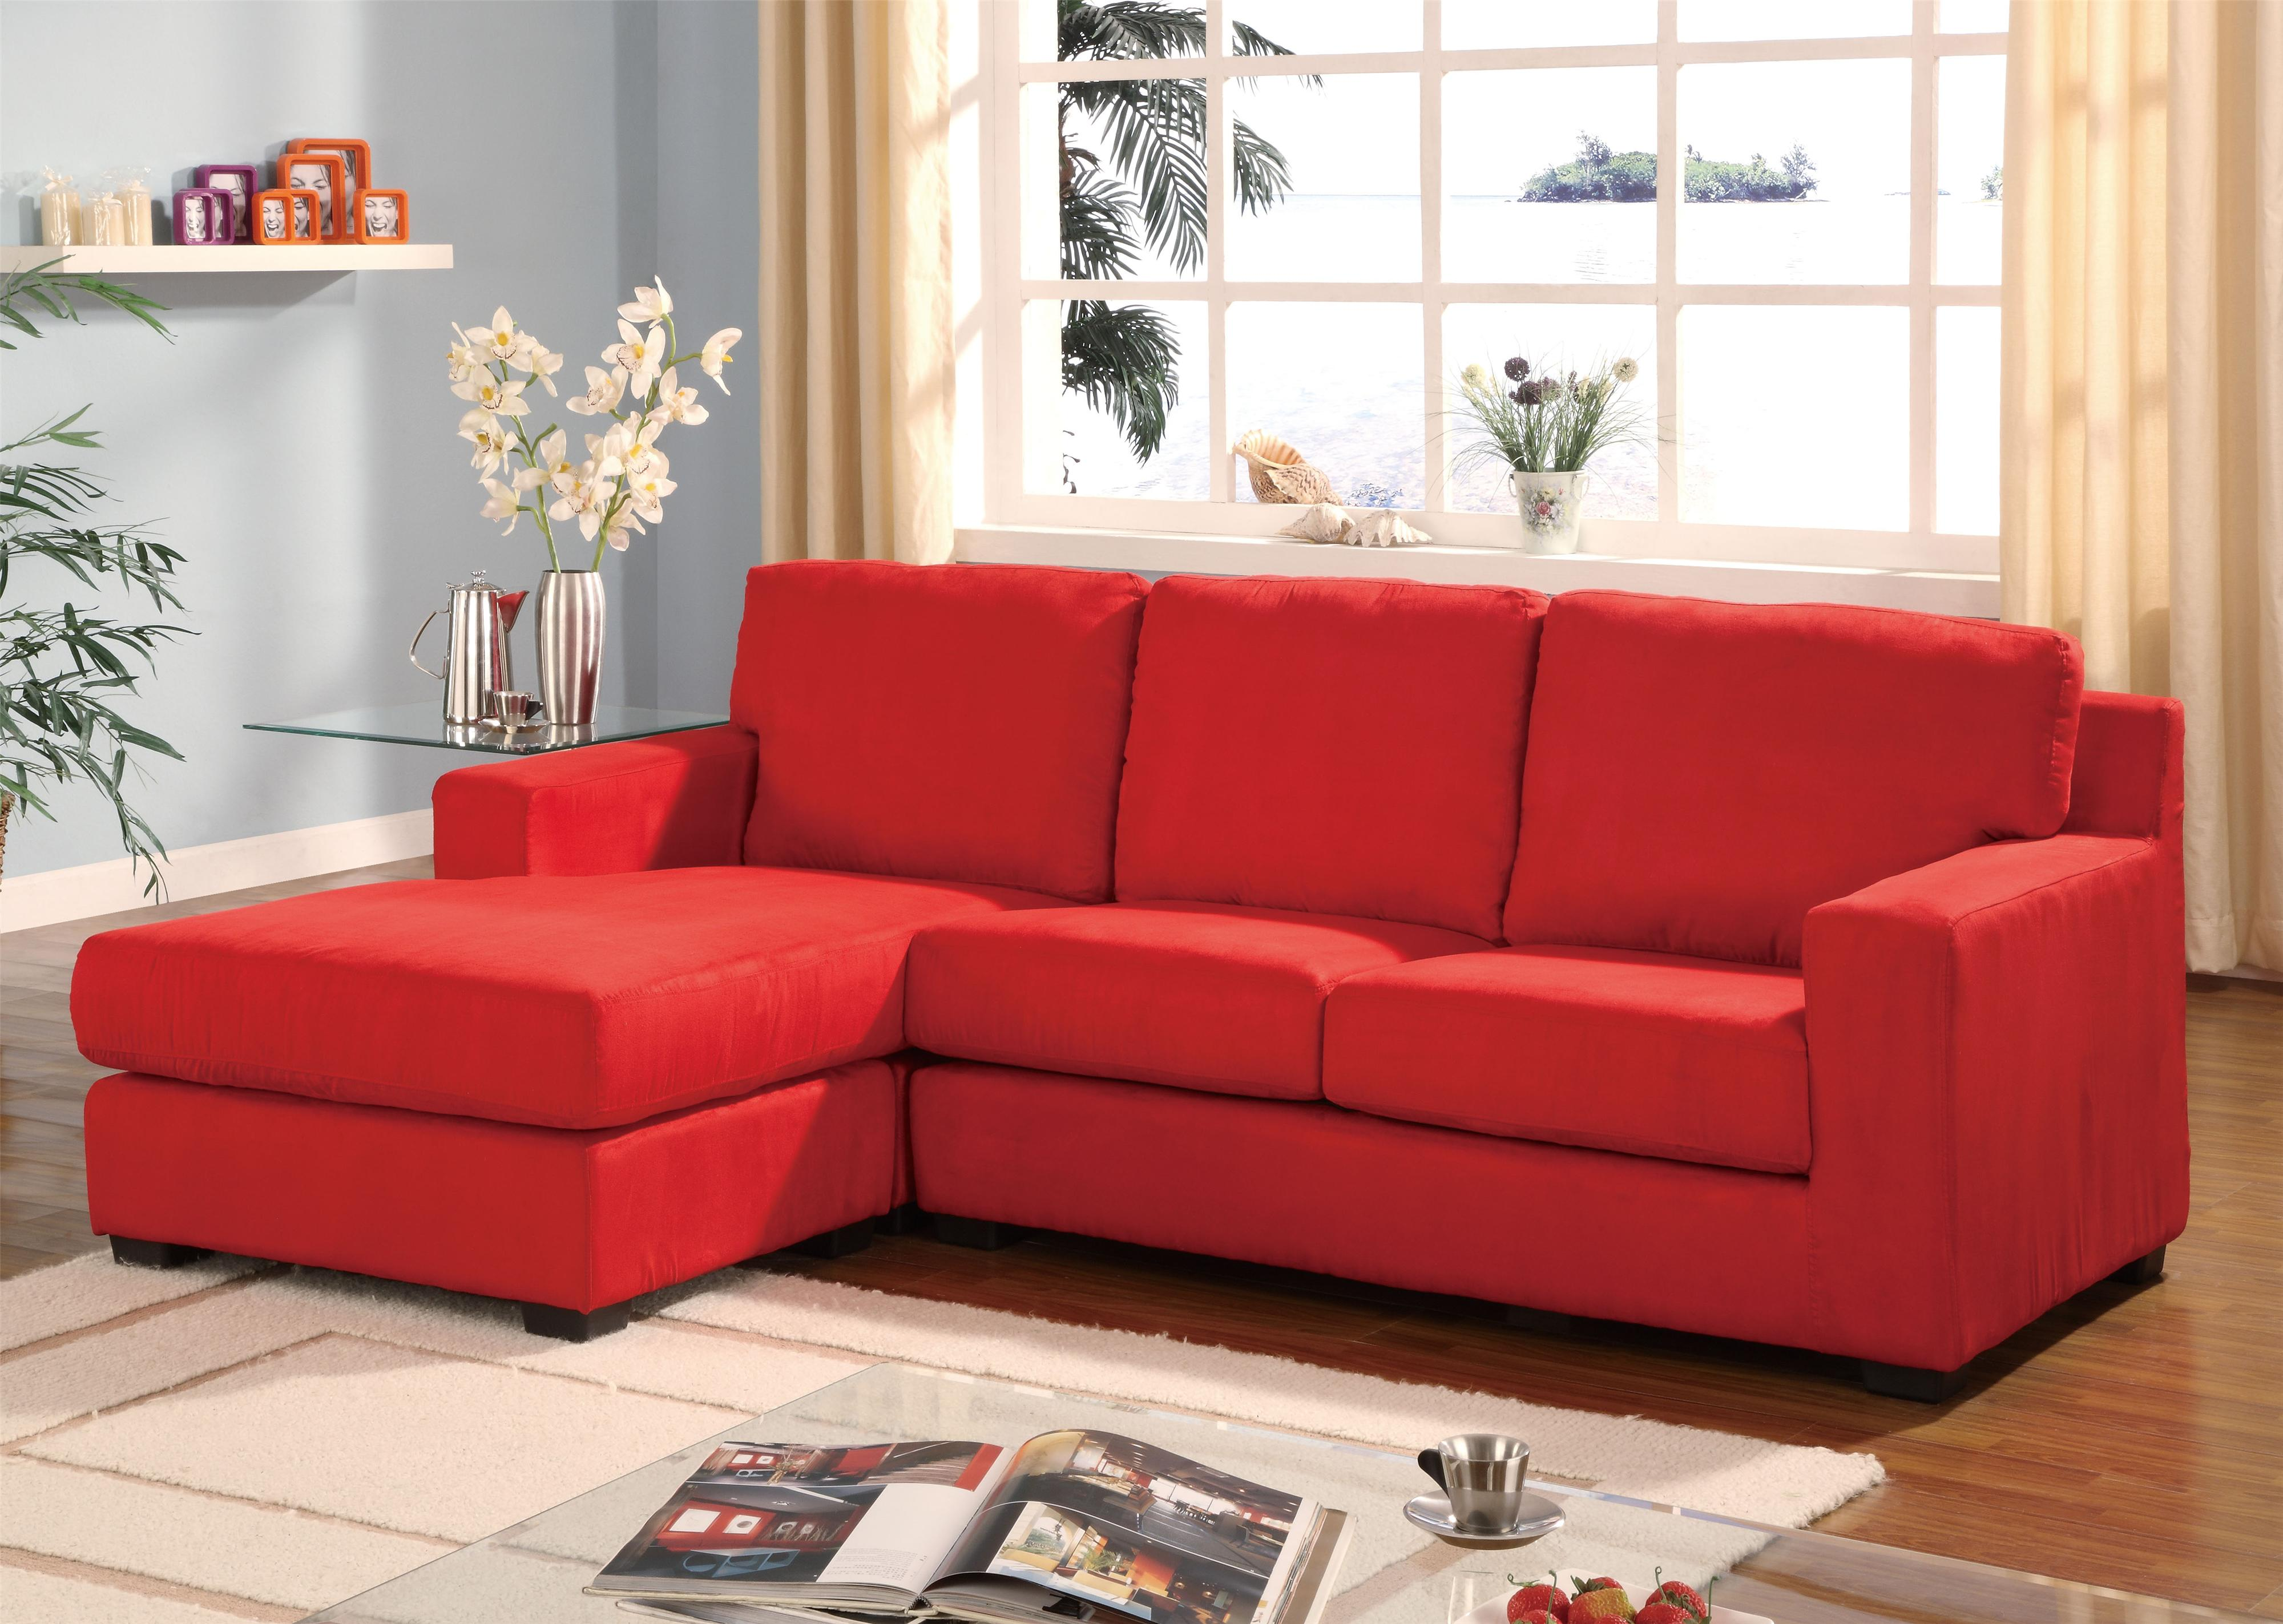 Acme Furniture Sectionals Sectional Sofa - Item Number: 5917 LAFC+5917 RAF